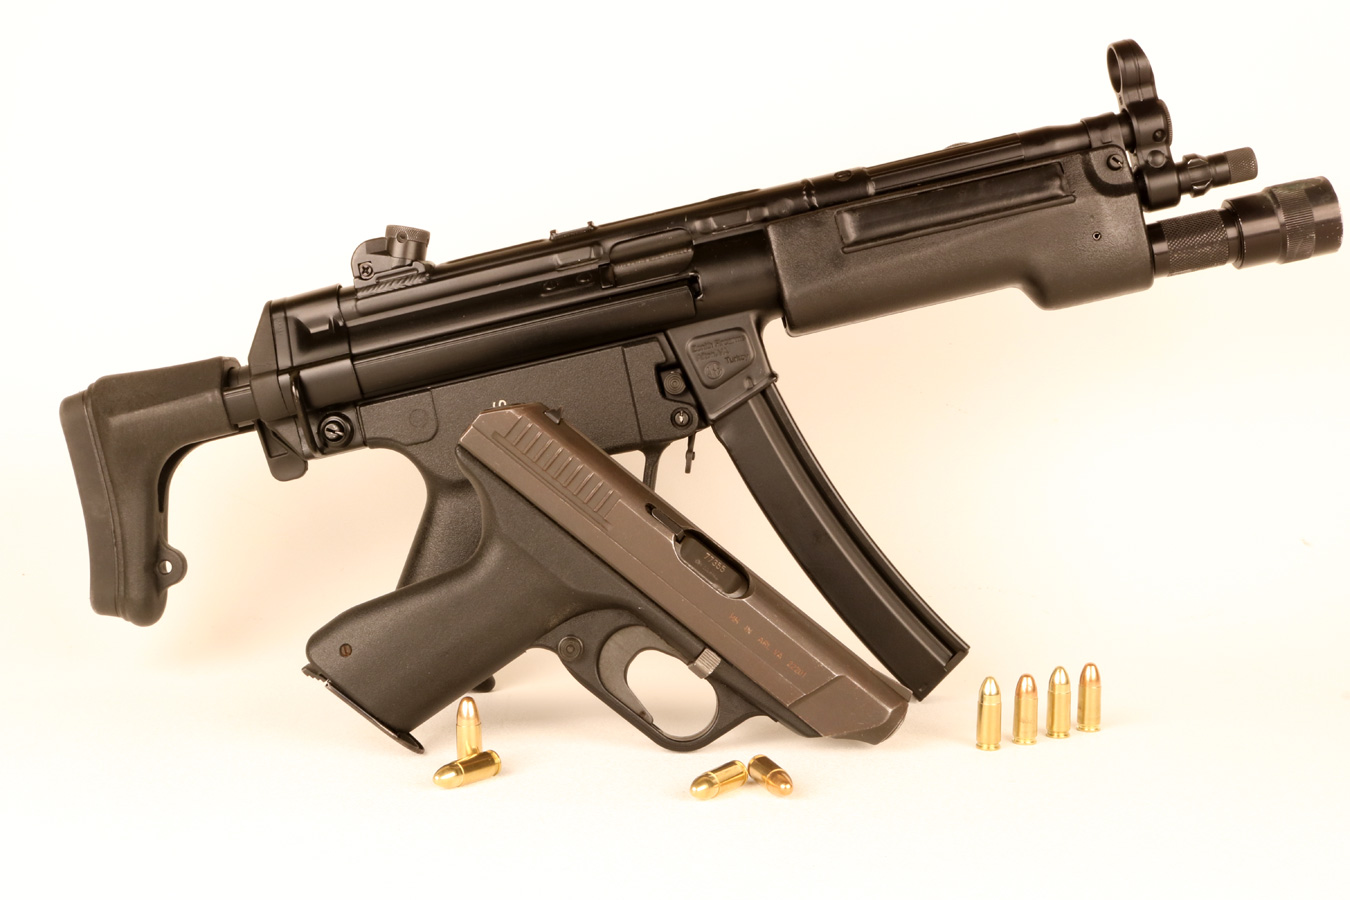 HK VP70 pistol in front of a HK MP5 submachine gun